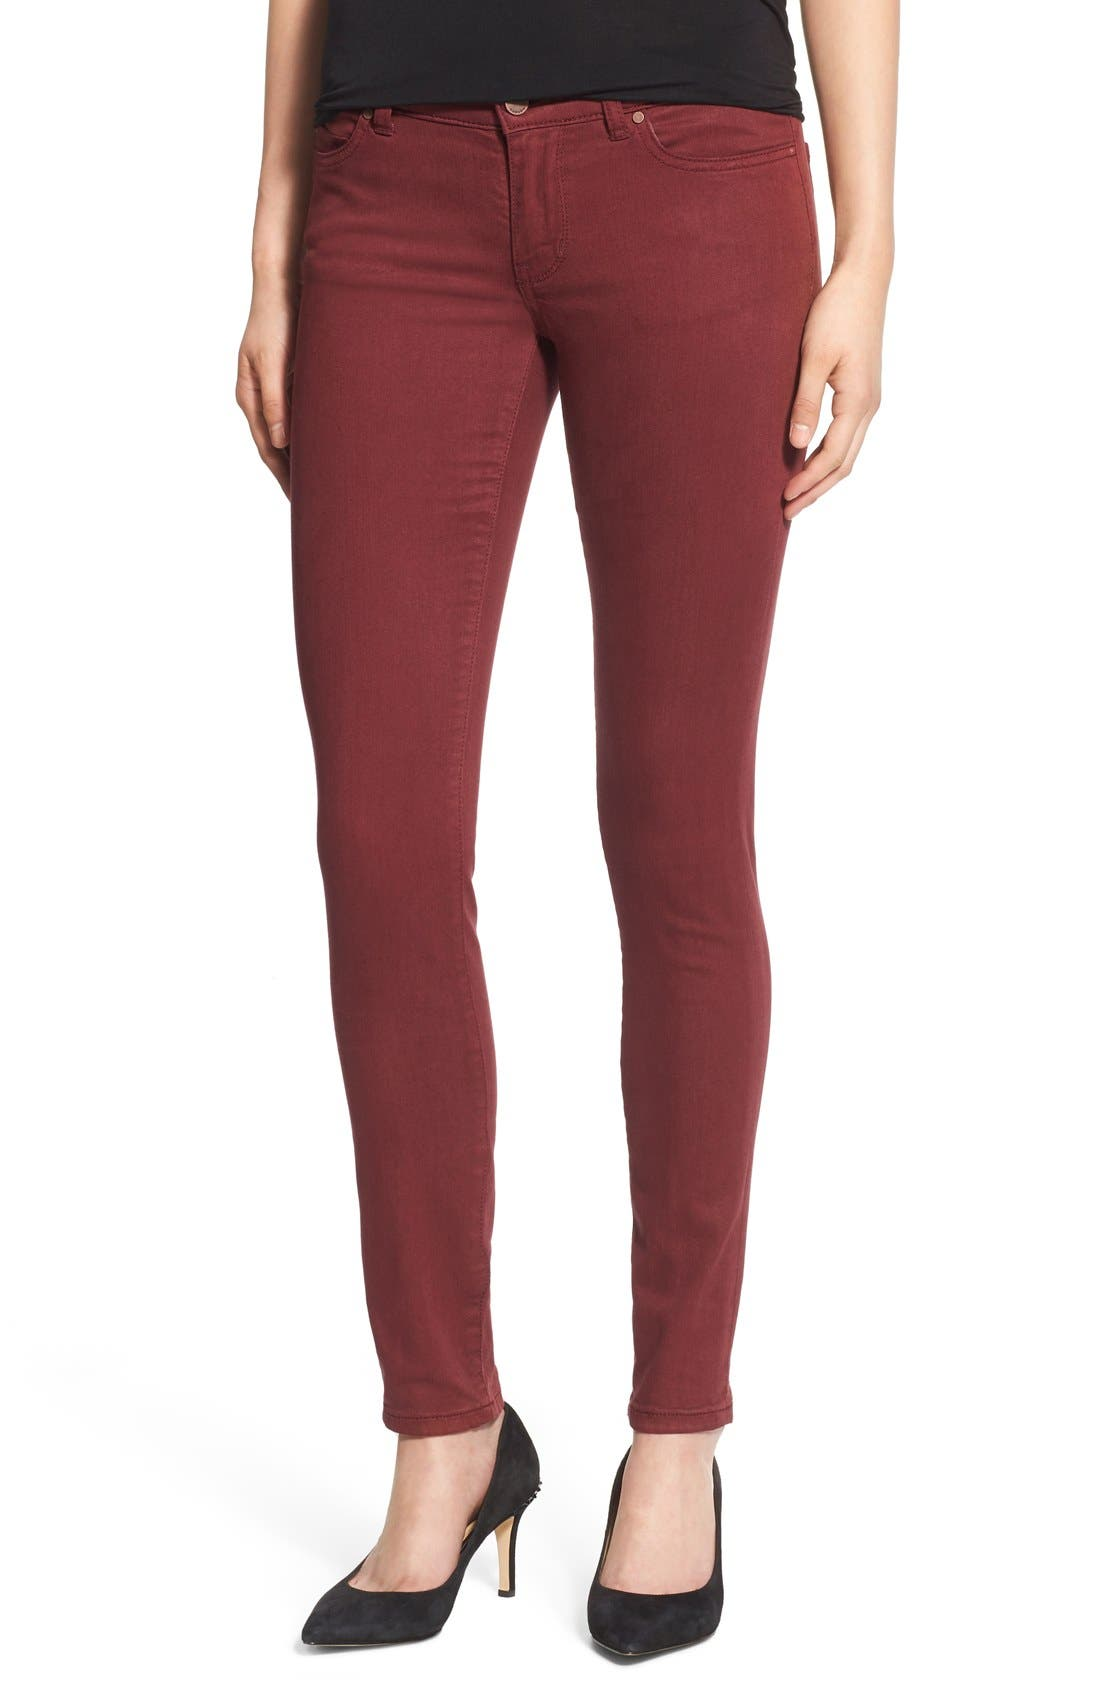 Alternate Image 1 Selected - Caslon® Colored Stretch Skinny Jeans